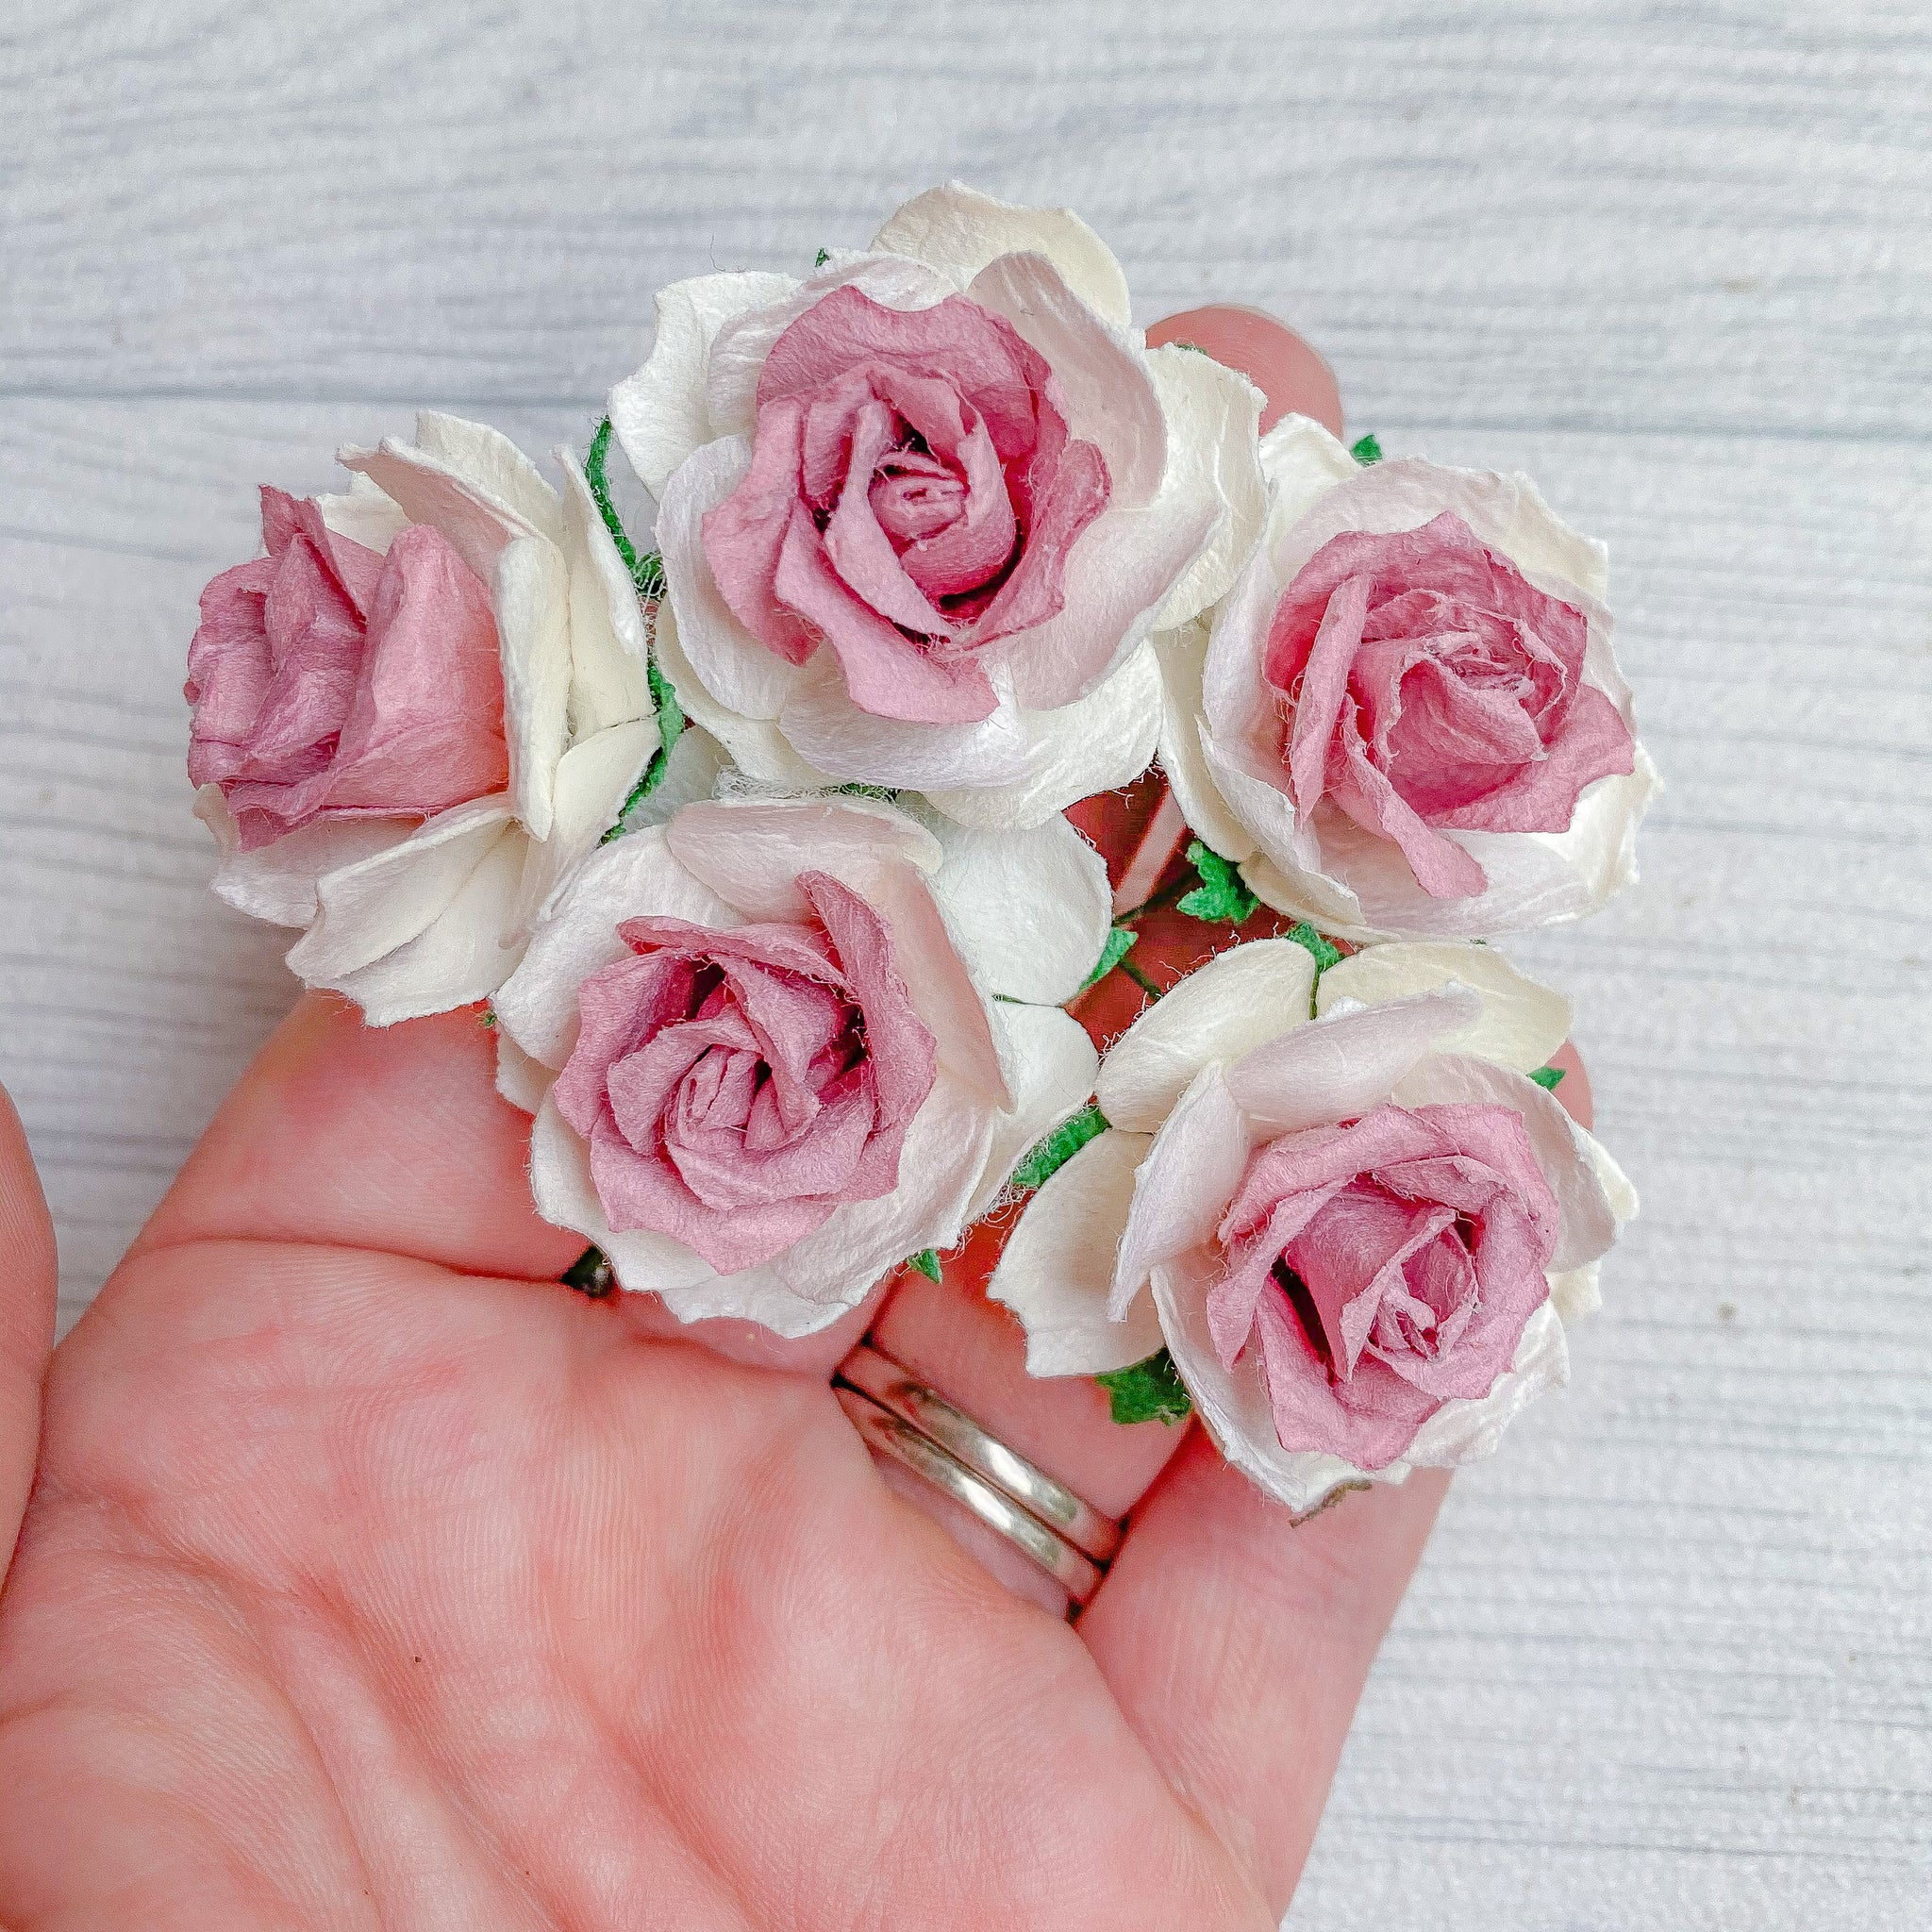 Mulberry Wild Rose White & Pink Ombre 30mm (10)